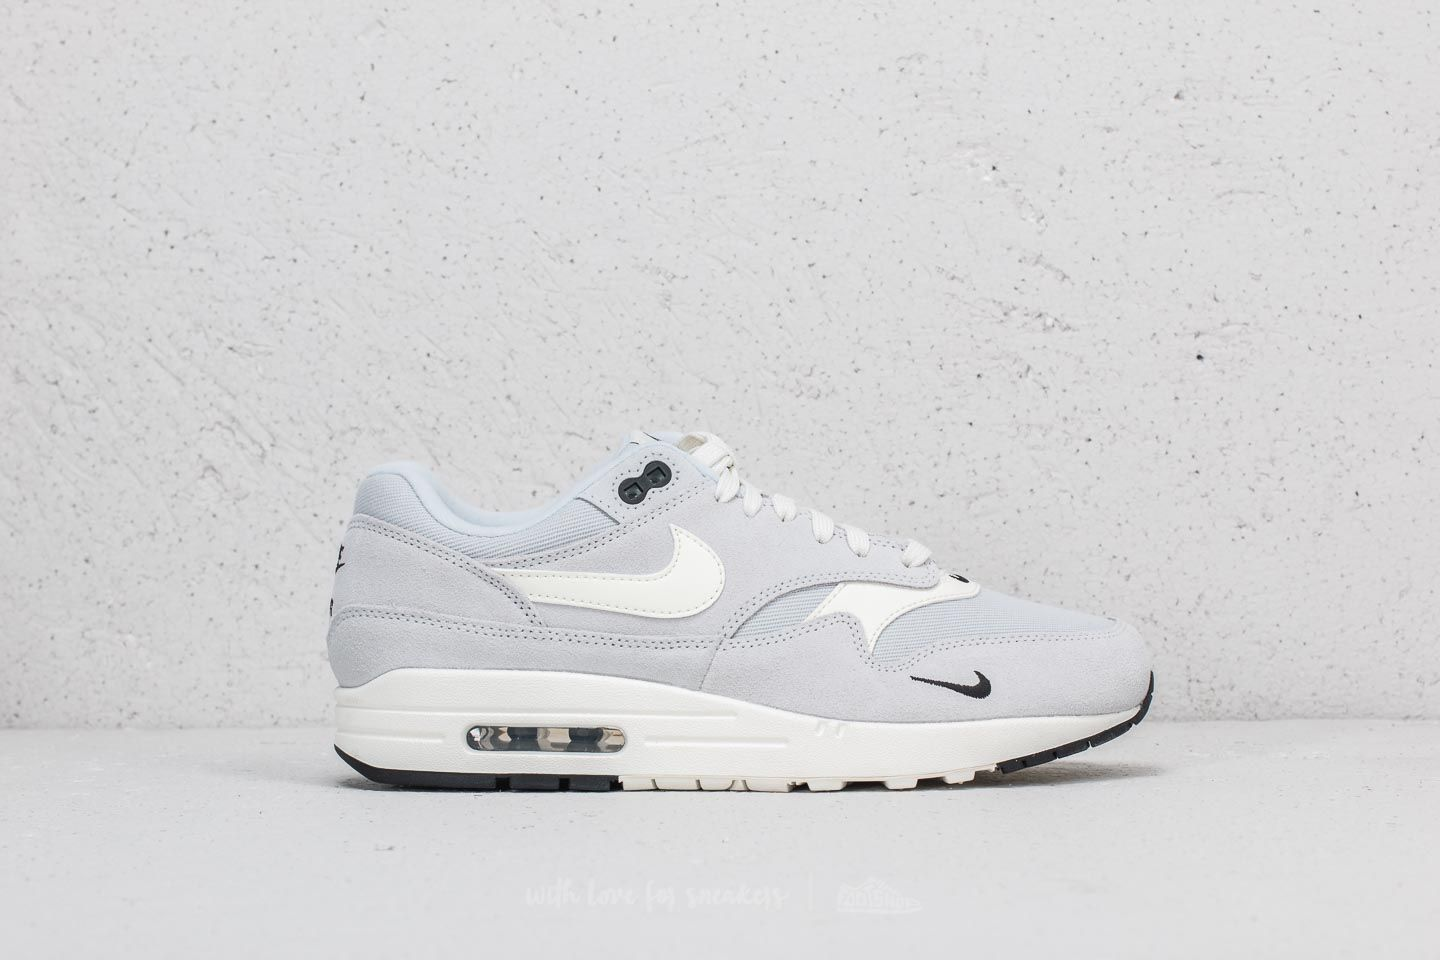 online retailer b61e4 aa0b6 Nike Air Max 1 Premium Pure Platinum  Sail-Black-White at a great